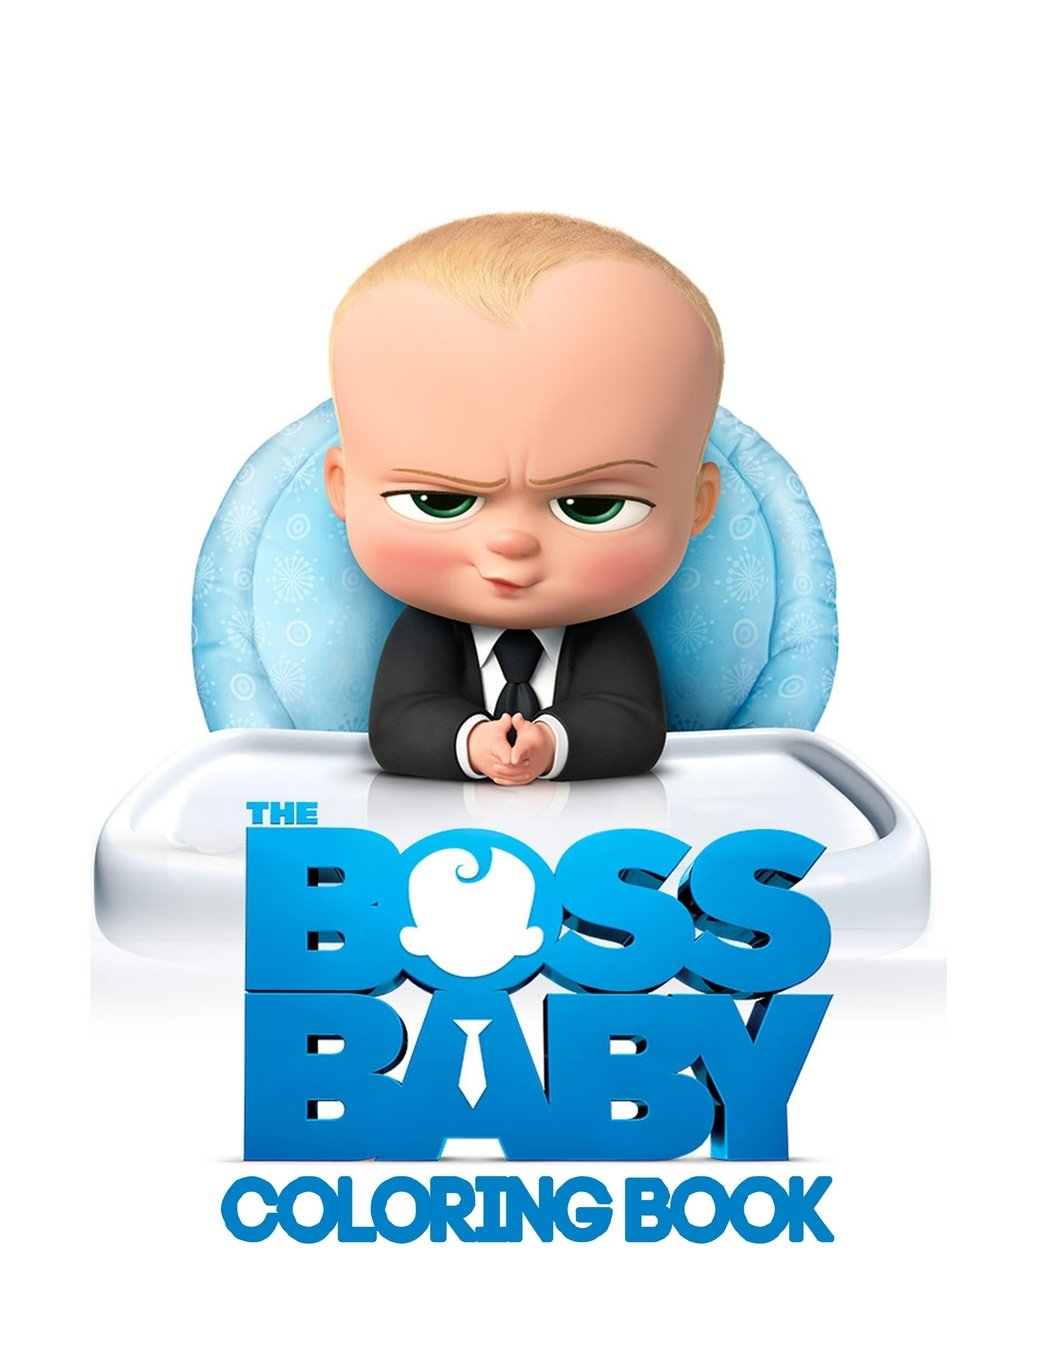 Amazon Com Boss Baby Coloring Book Coloring Book For Kids And Adults This Amazing Coloring Book Will Make Your Kids Happier And Give Them Joy Best Books For Adults And Kids 2 4